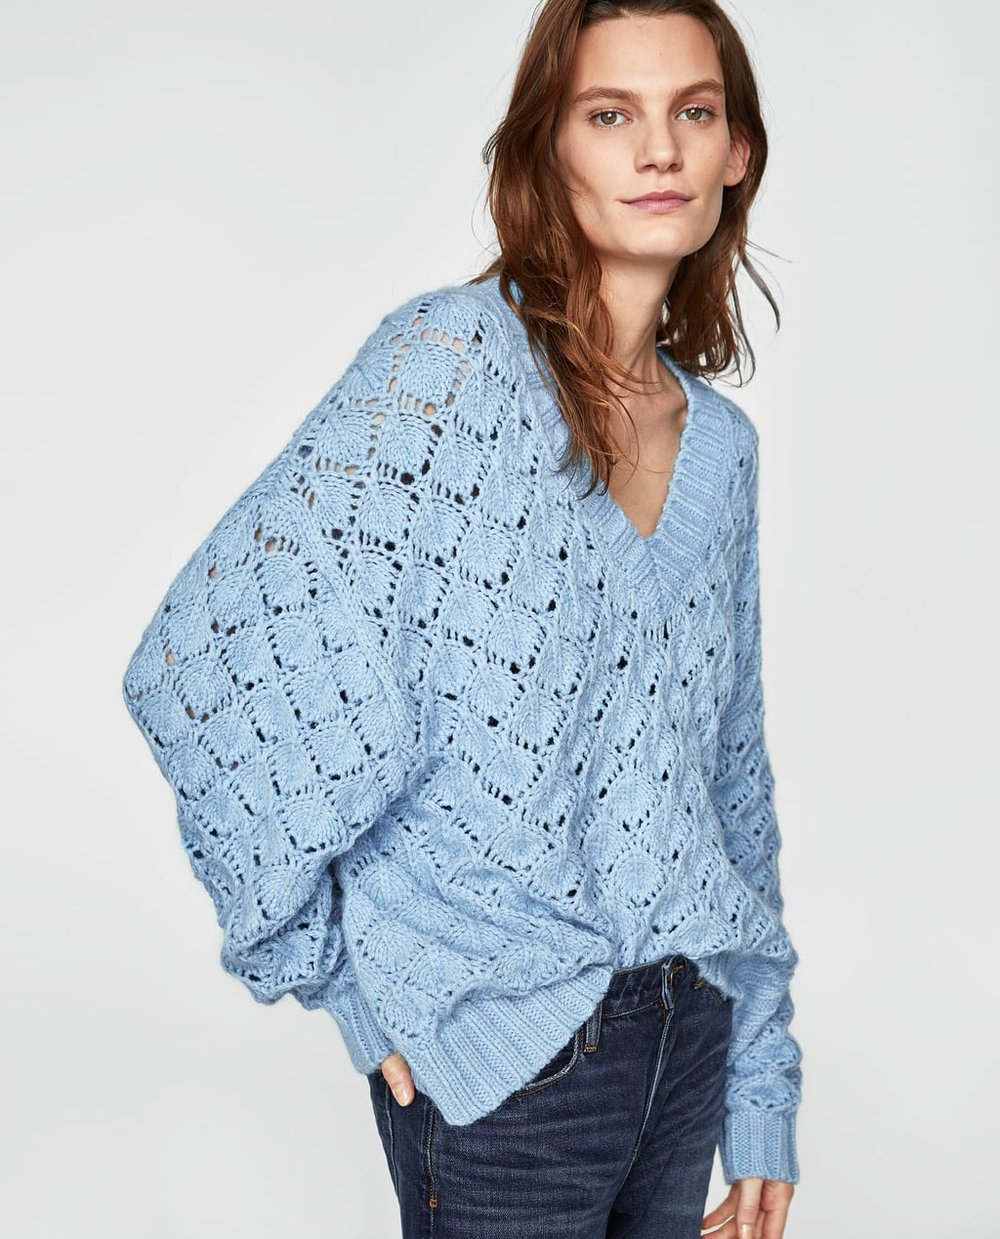 Zara-V-Neck-Openwork-Sweater.jpg